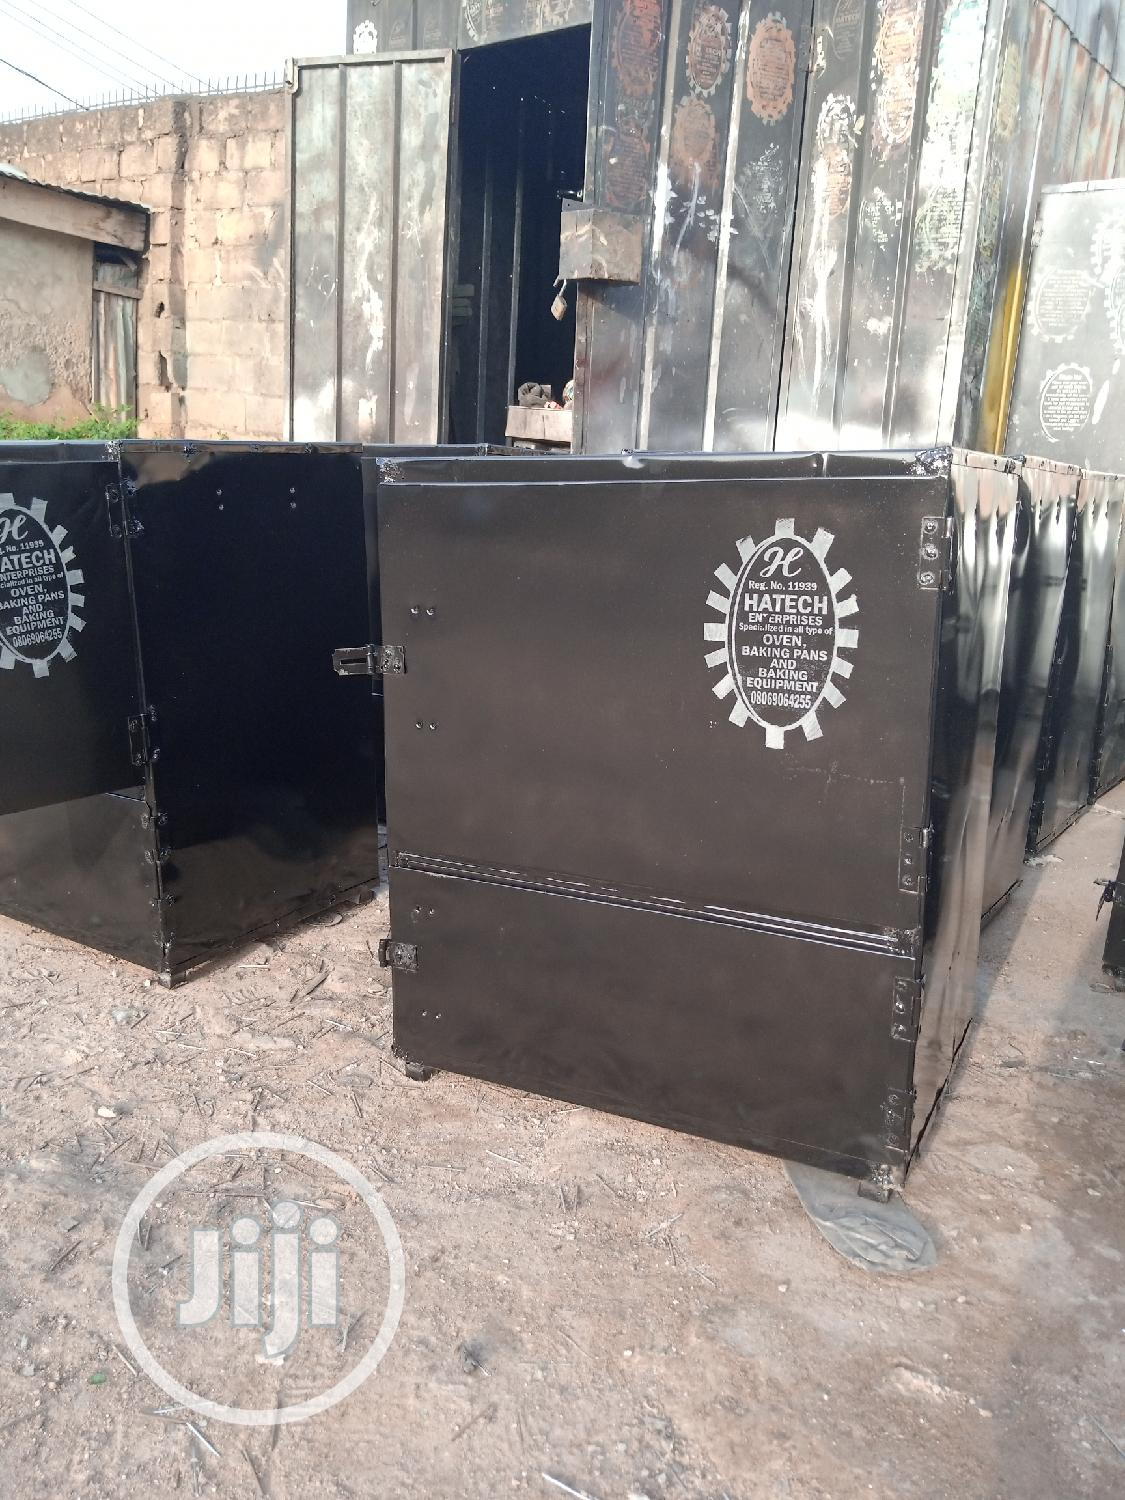 Easytech Charcoal And Gas Oven Enterprises   Industrial Ovens for sale in Offa, Kwara State, Nigeria